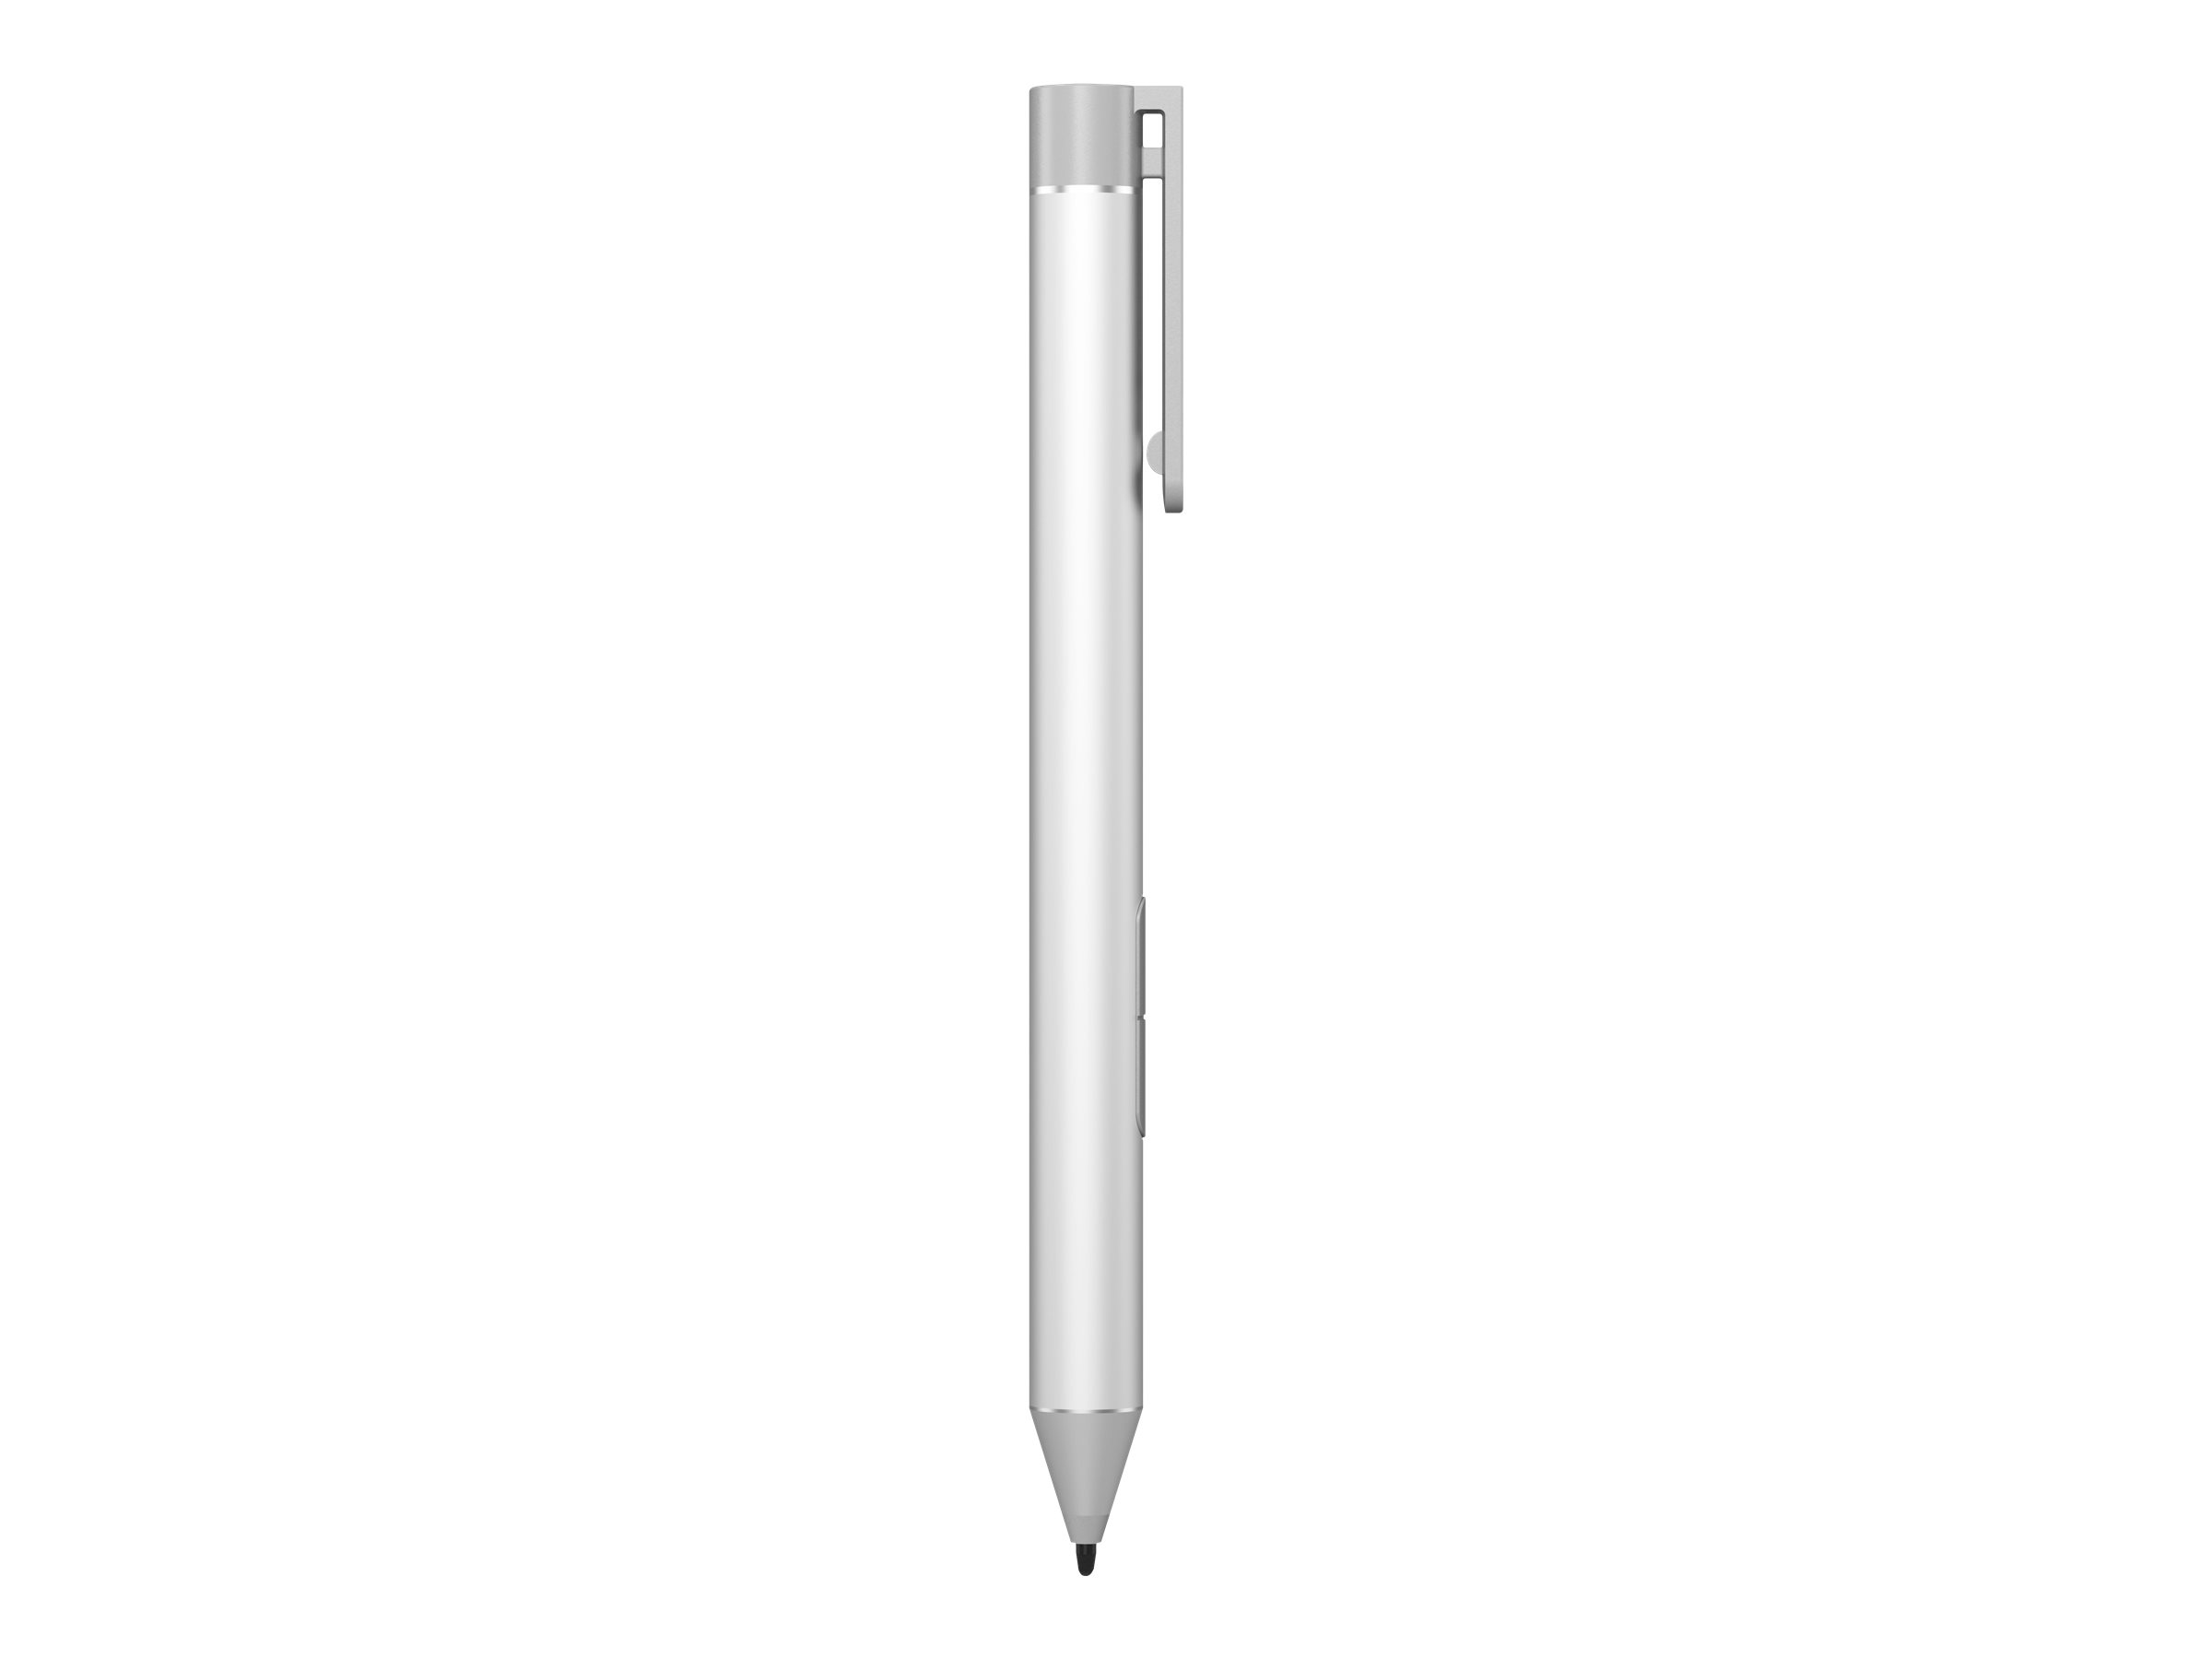 HP Active Pen - Digitaler Stift - 2 Tasten - Natural Silver - für Elite x2 1012 G2; EliteBook x360 1020 G2; Pro x2 612 G2; ProBook x360 11 G1, 11 G2